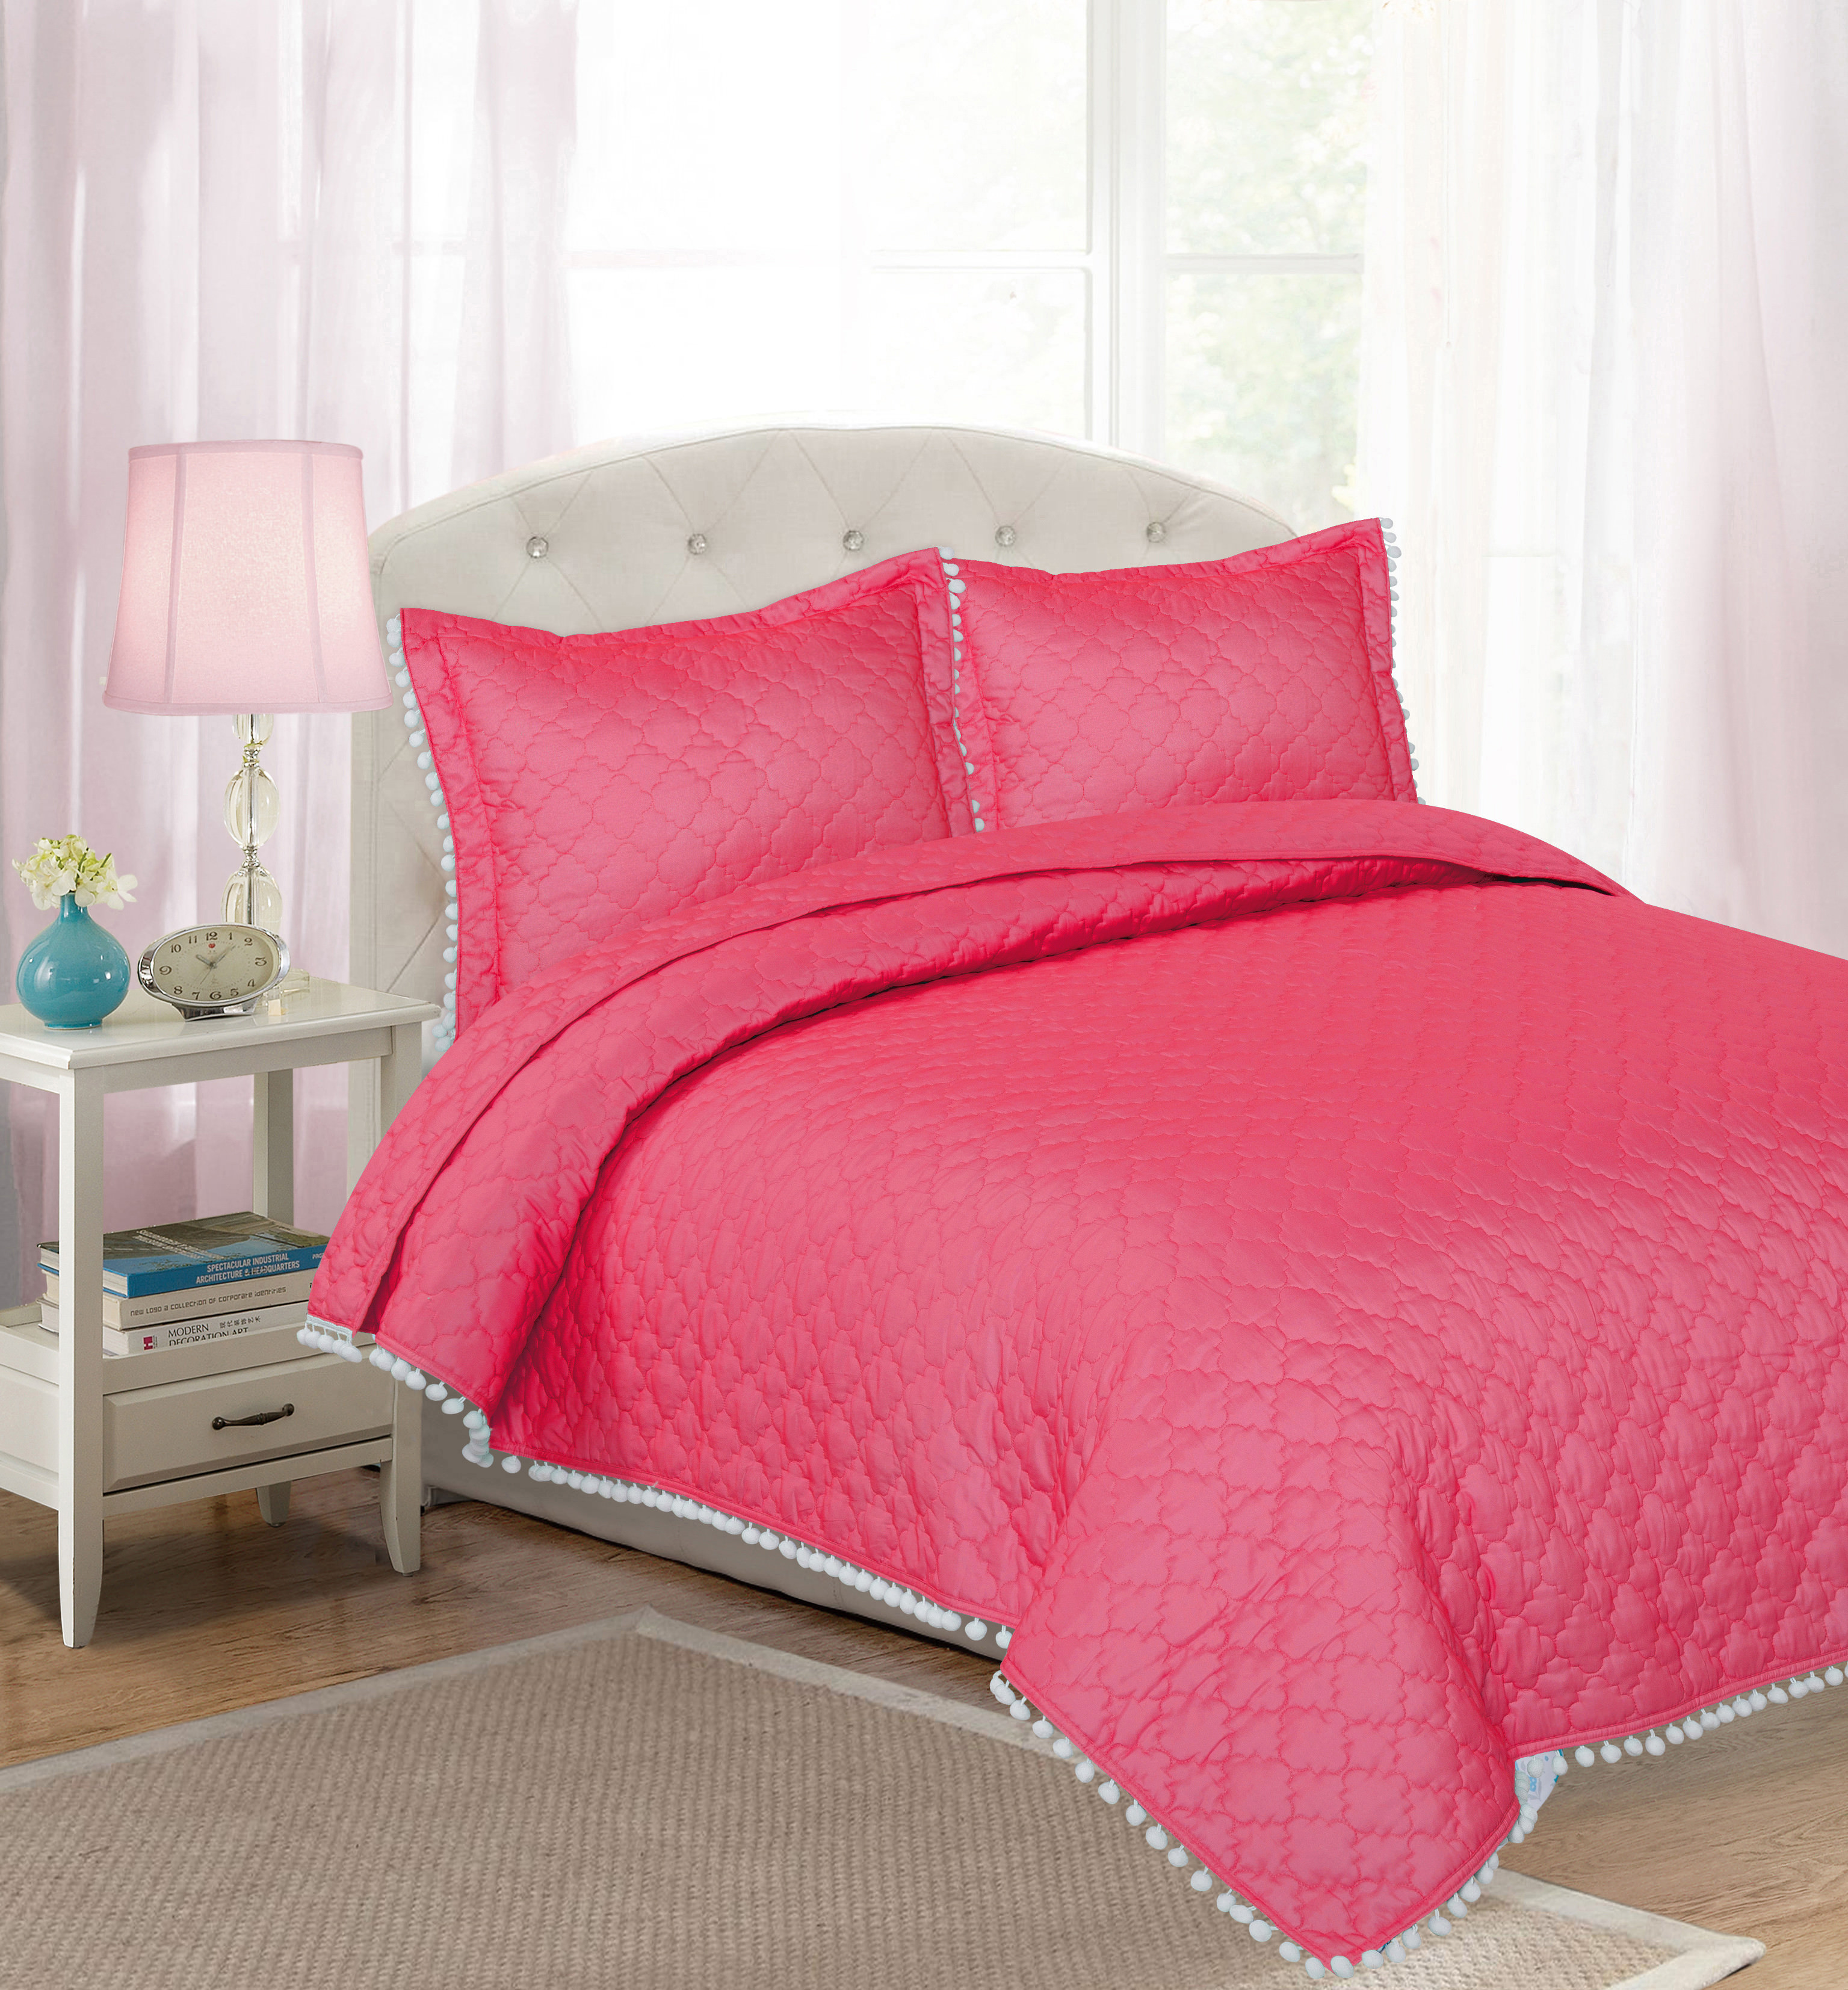 Your Zone Solid Color Quilt Set with Pom Pom Detail